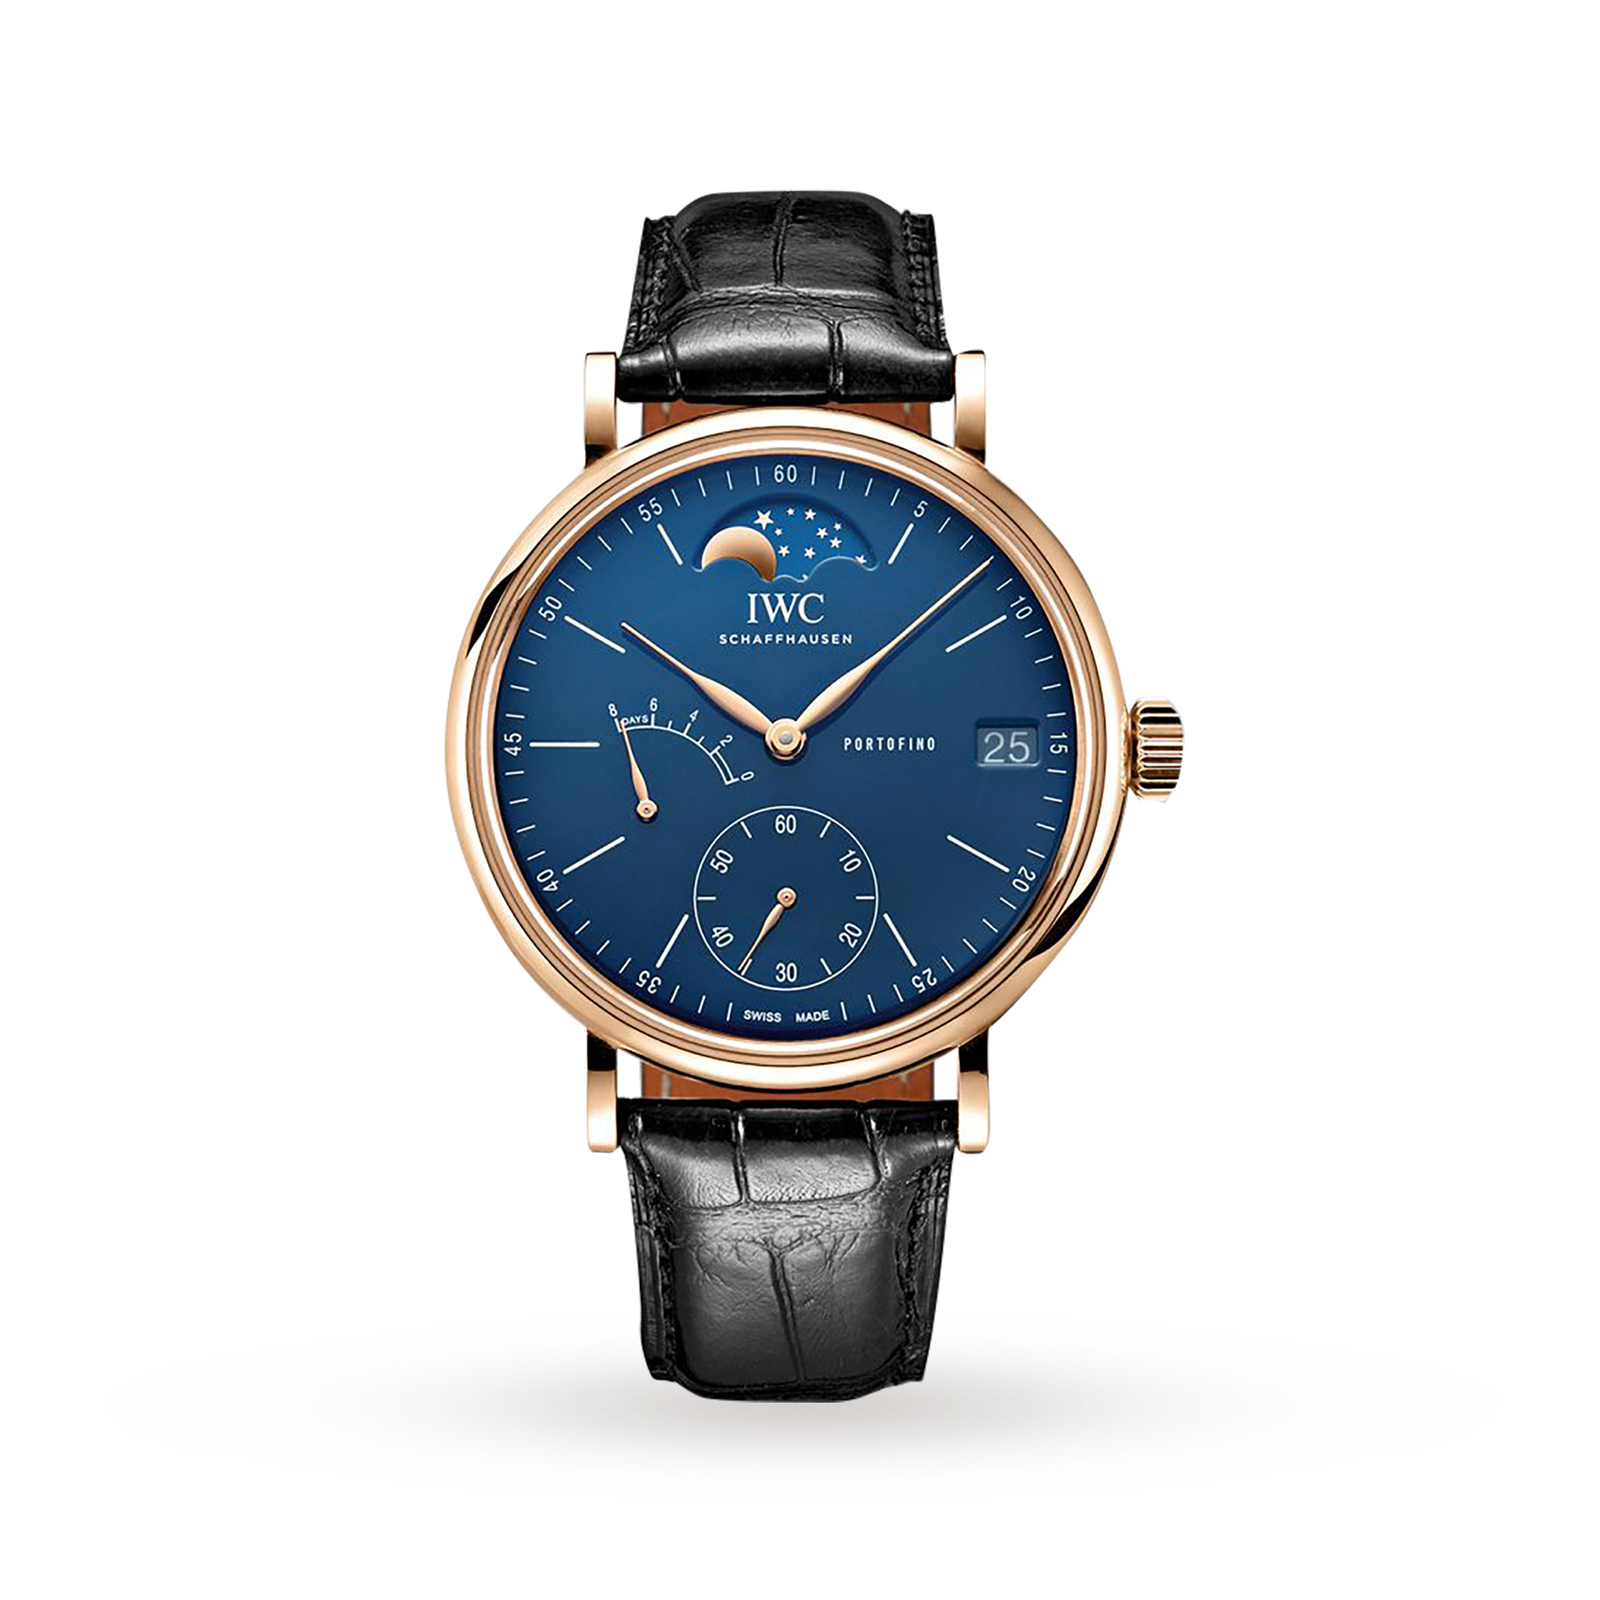 IWC Portofino Hand-Wound Moon Phase Edition 150 Years